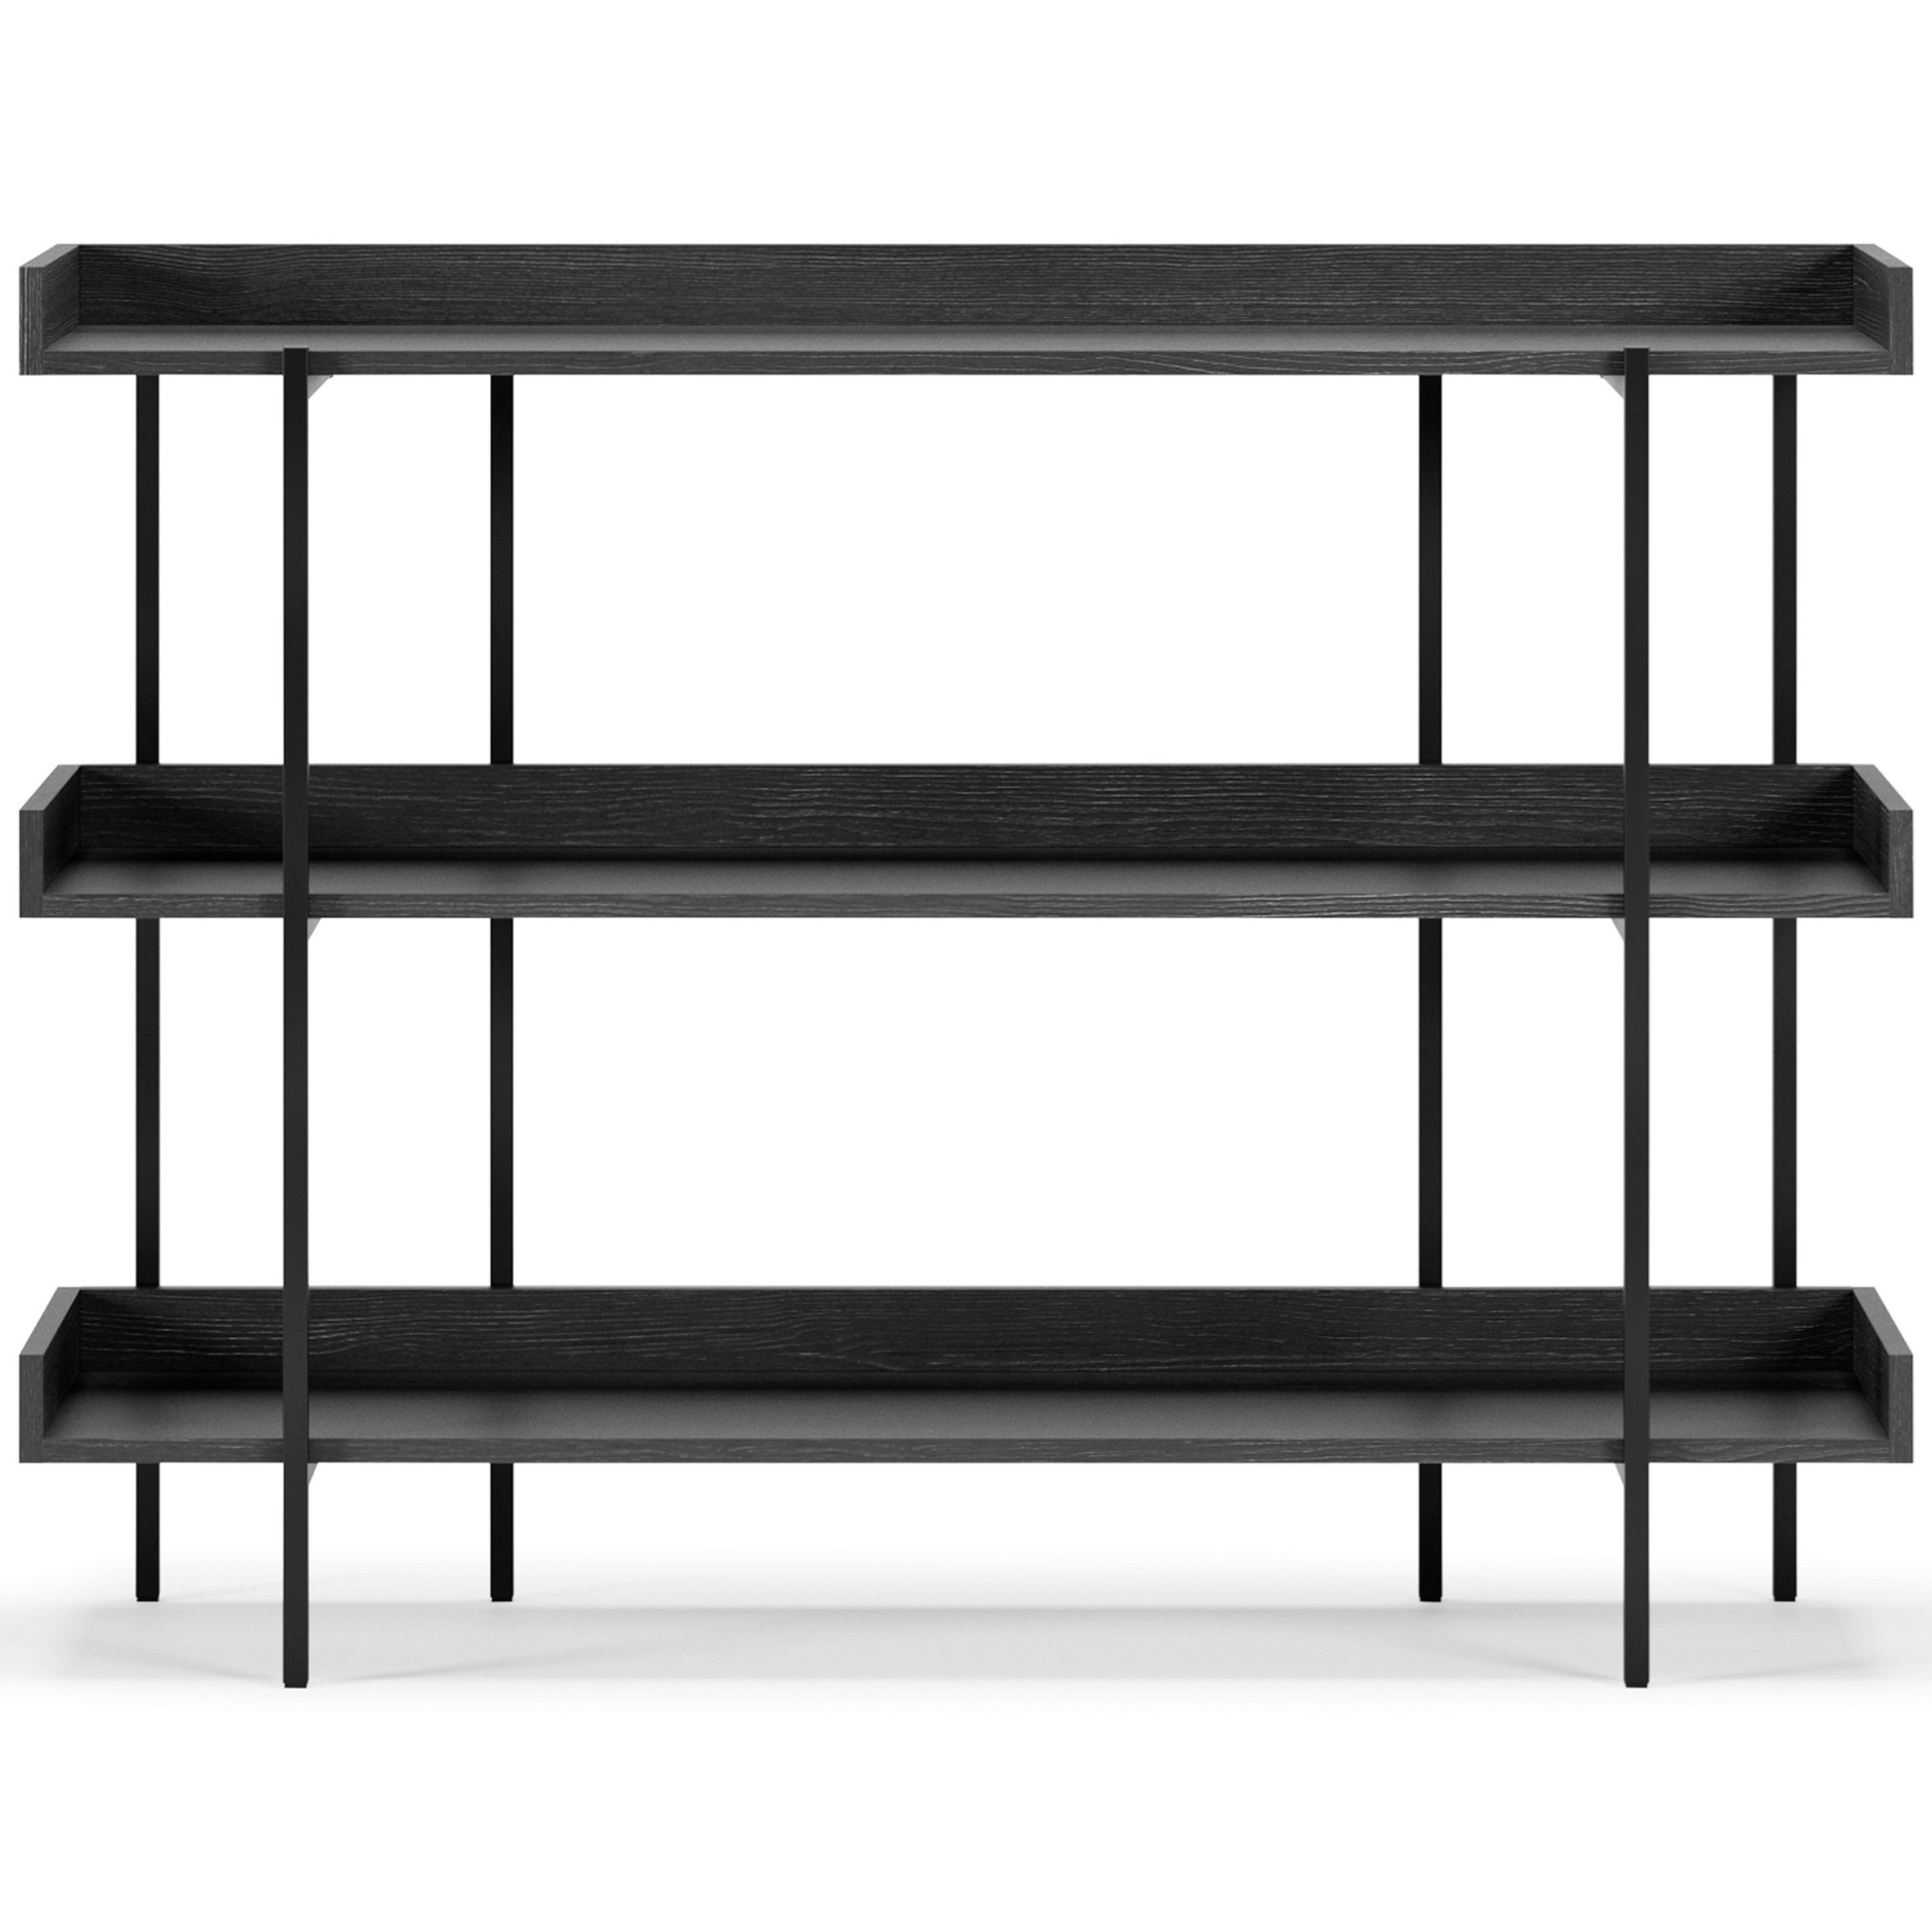 Yarlow Bookshelf by Signature Design by Ashley at Northeast Factory Direct